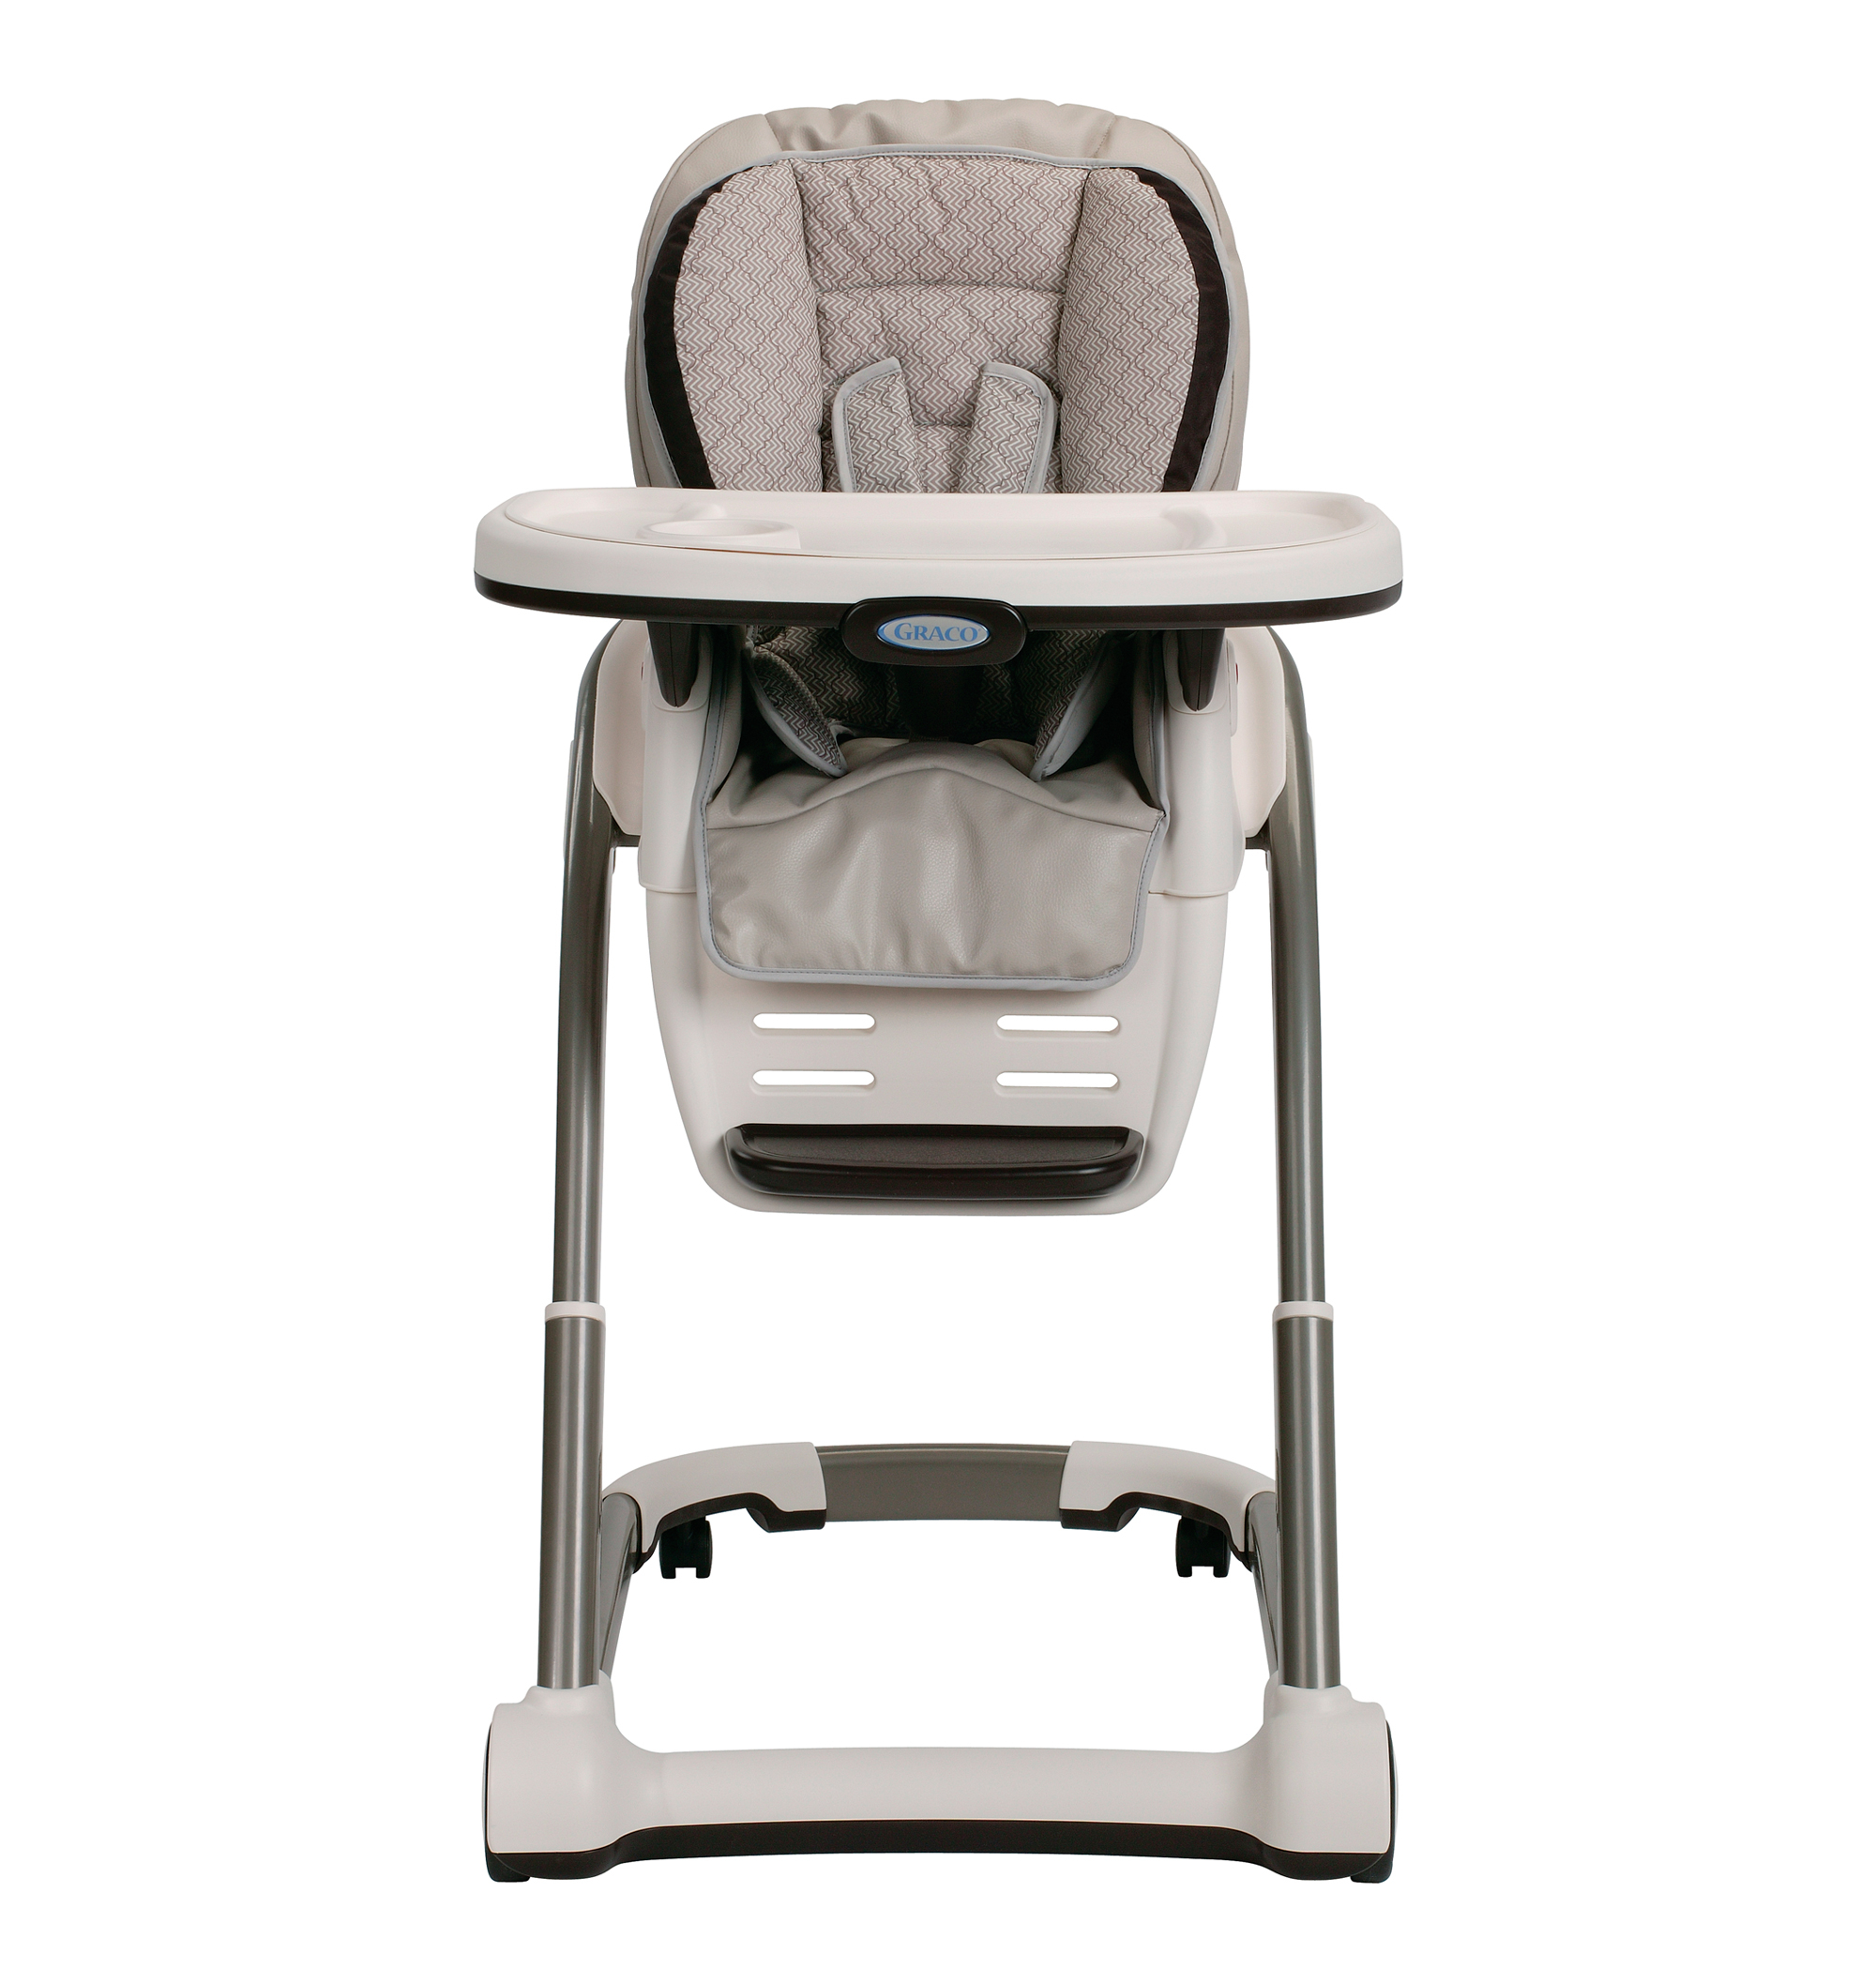 The Best High Chairs of 2016